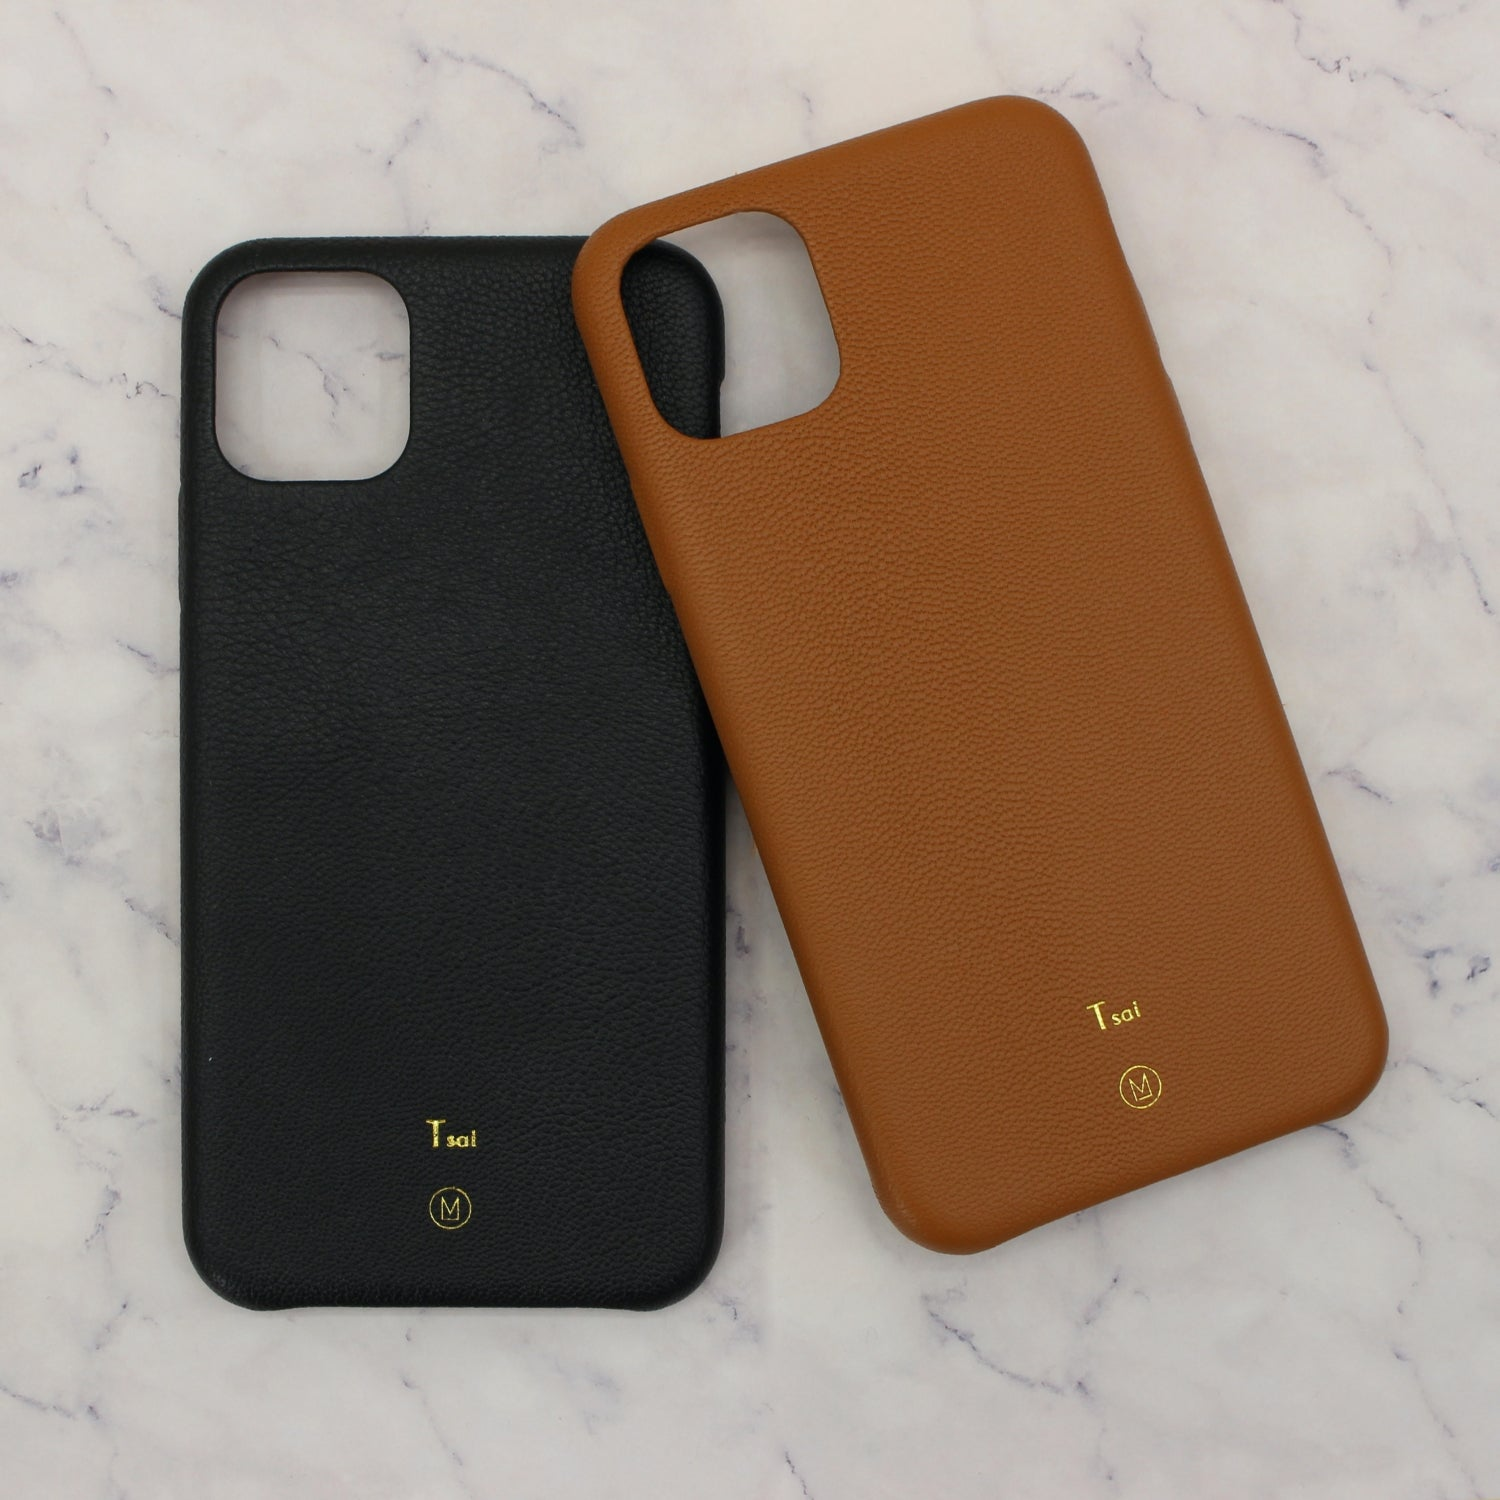 Get 2 Leather iPhone Cases at 15% off, so you can express yourself in different colors or match your iPhone with different outfits.